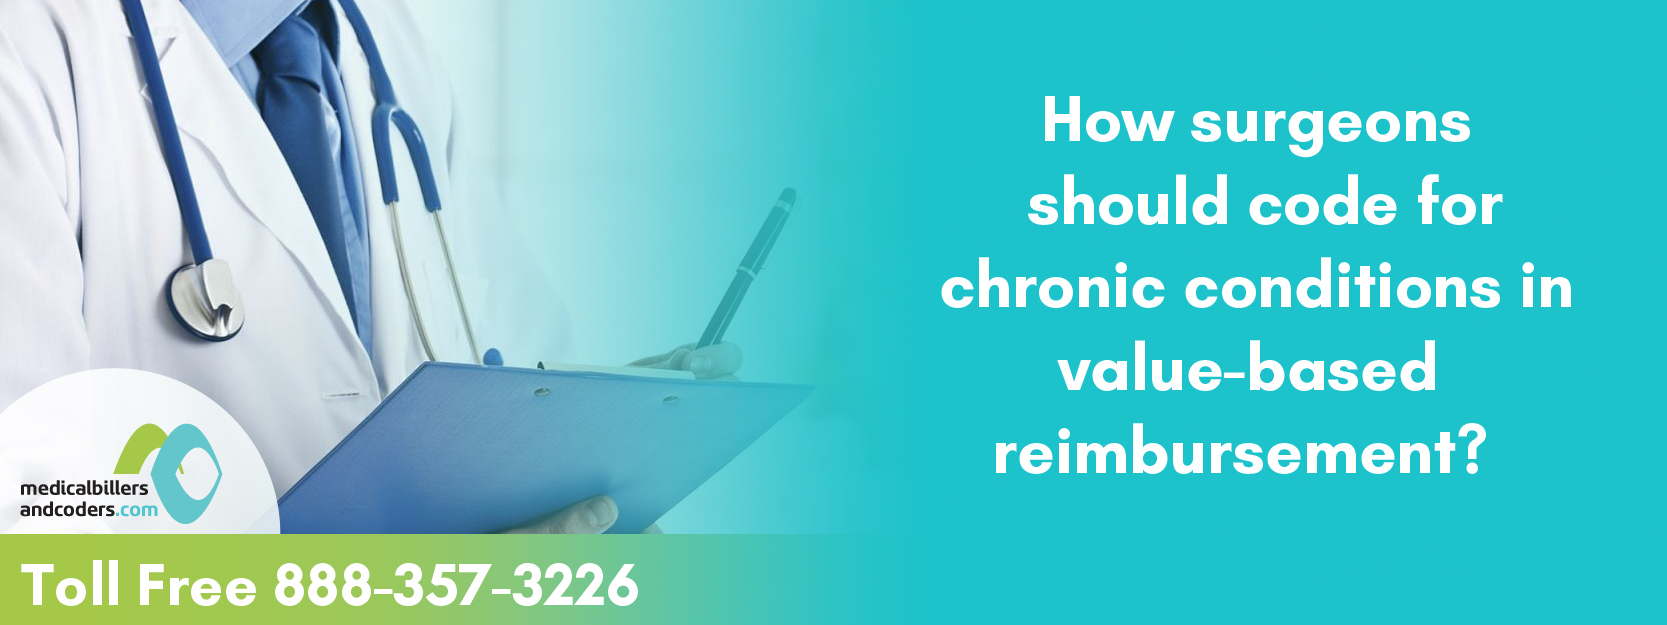 How Surgeons Should Code For Chronic Conditions In Value Based Reimbursement?